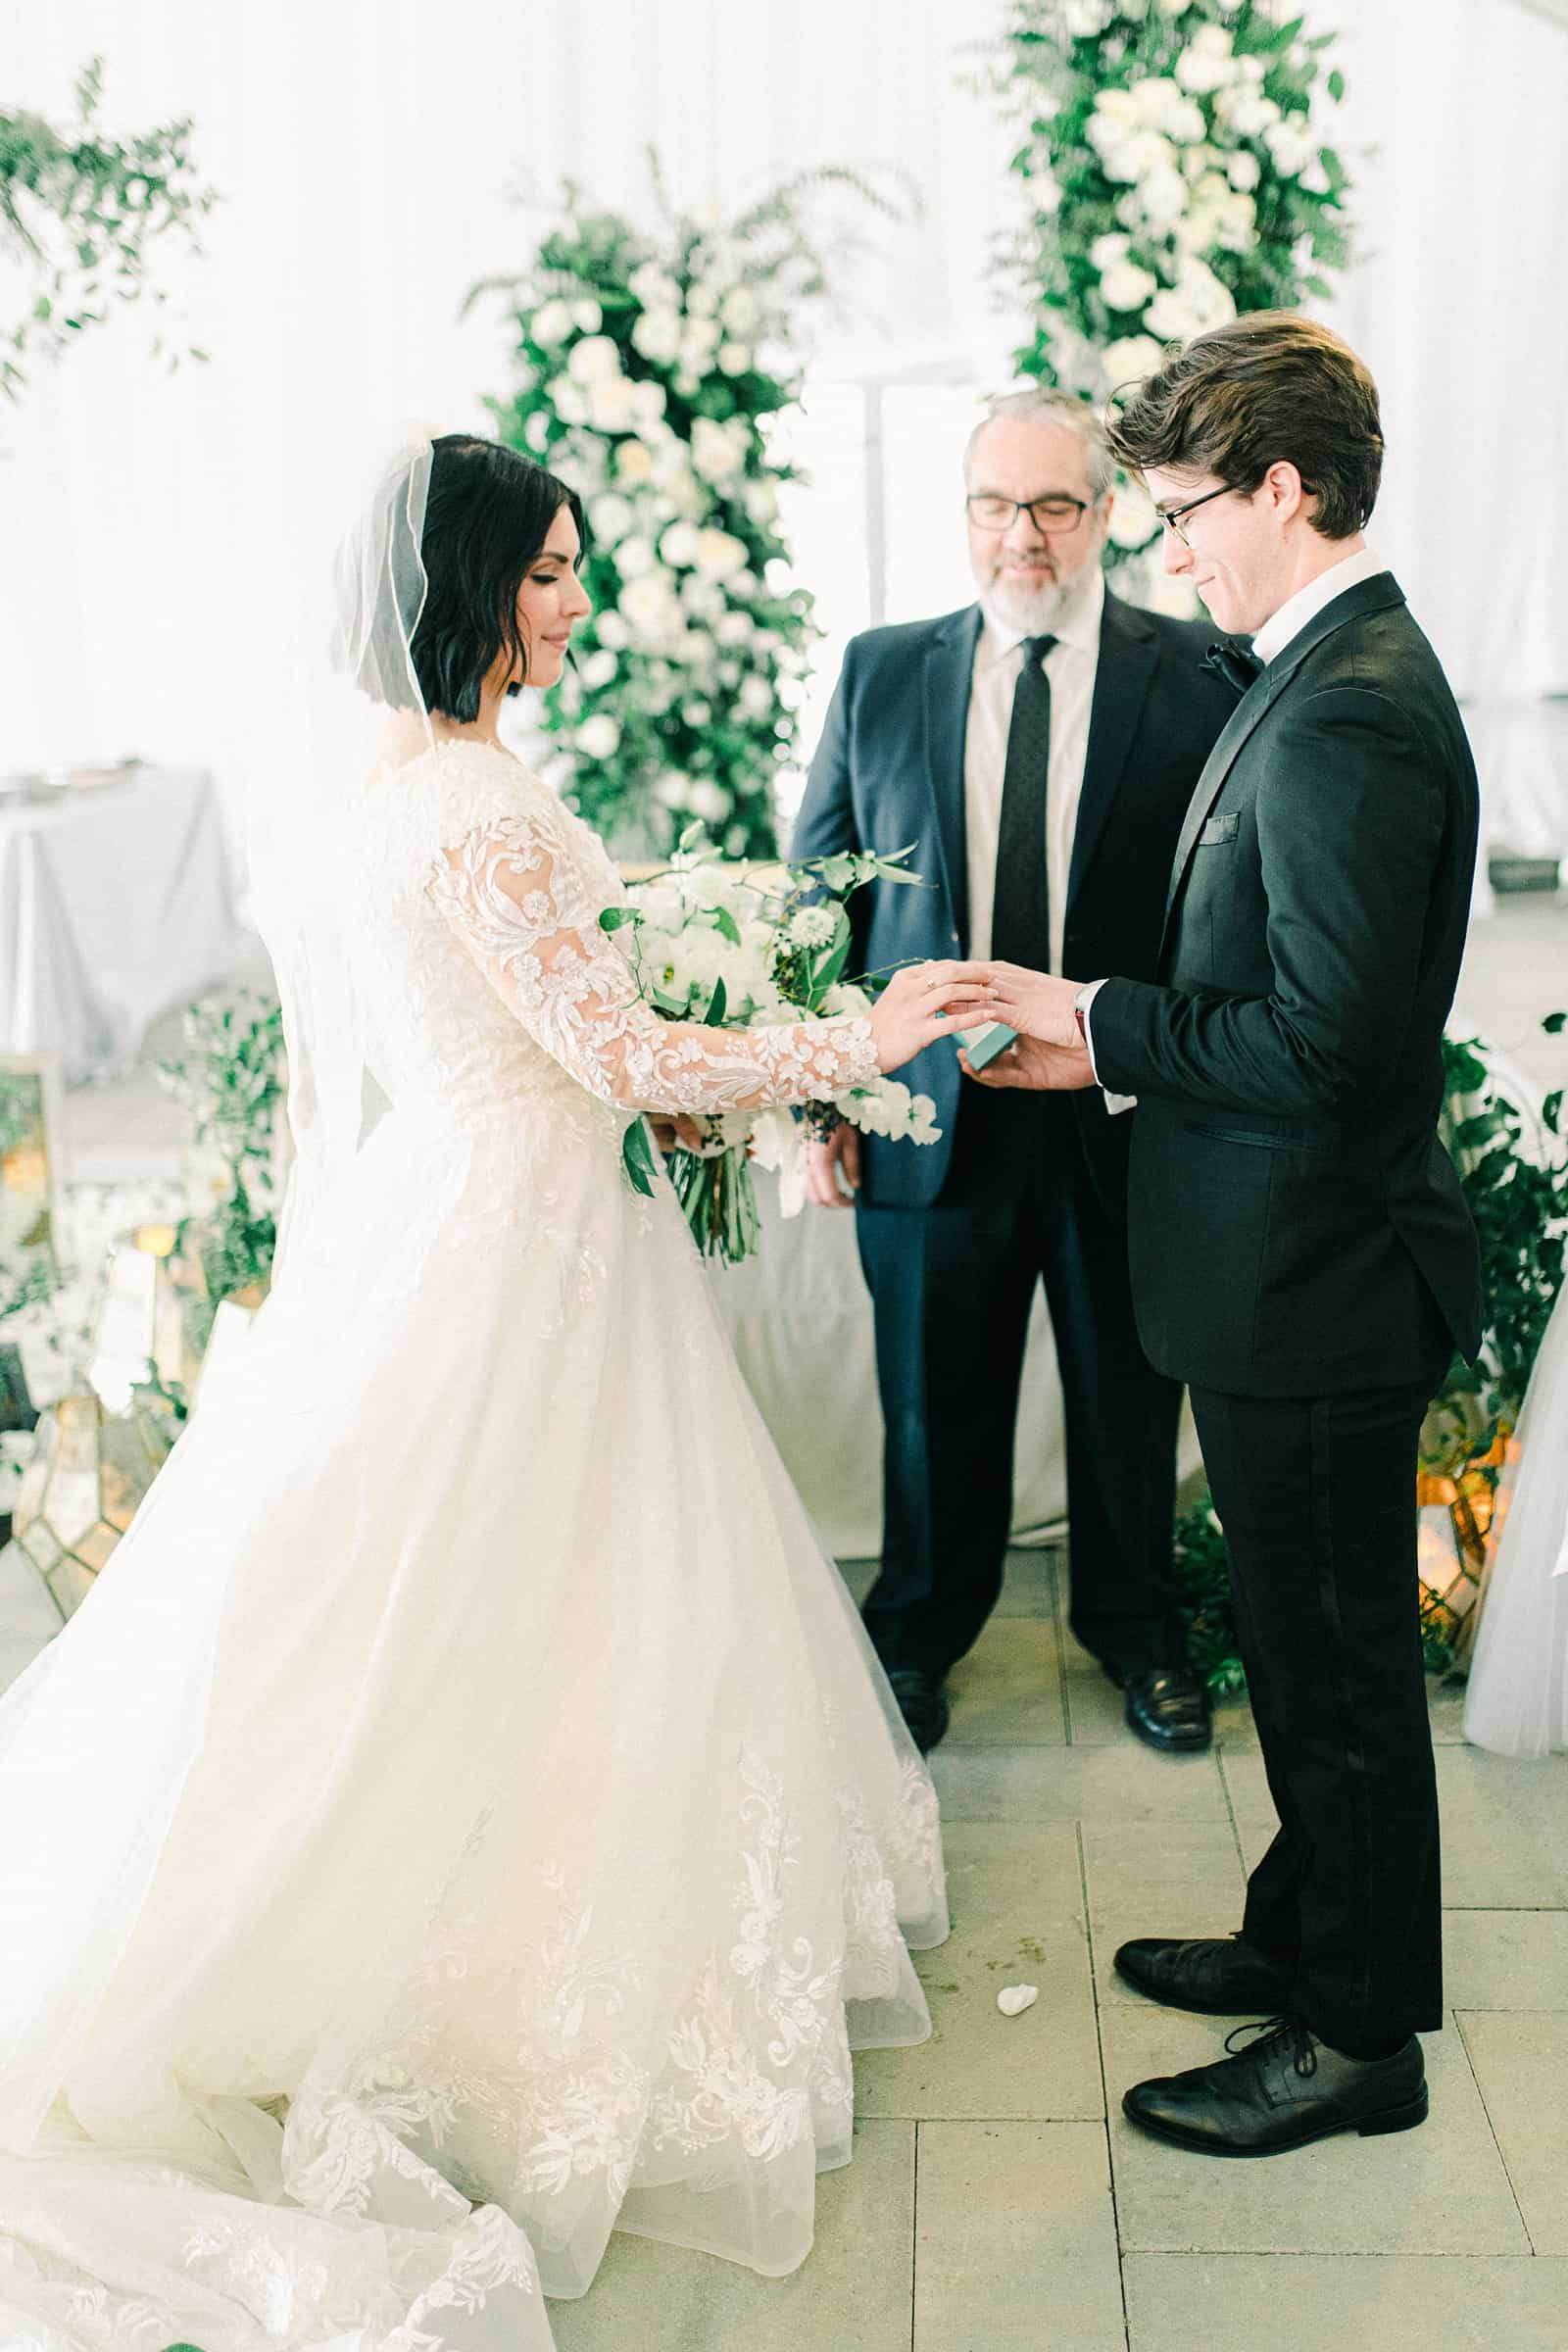 Wedding ceremony in white tent, ring exchange